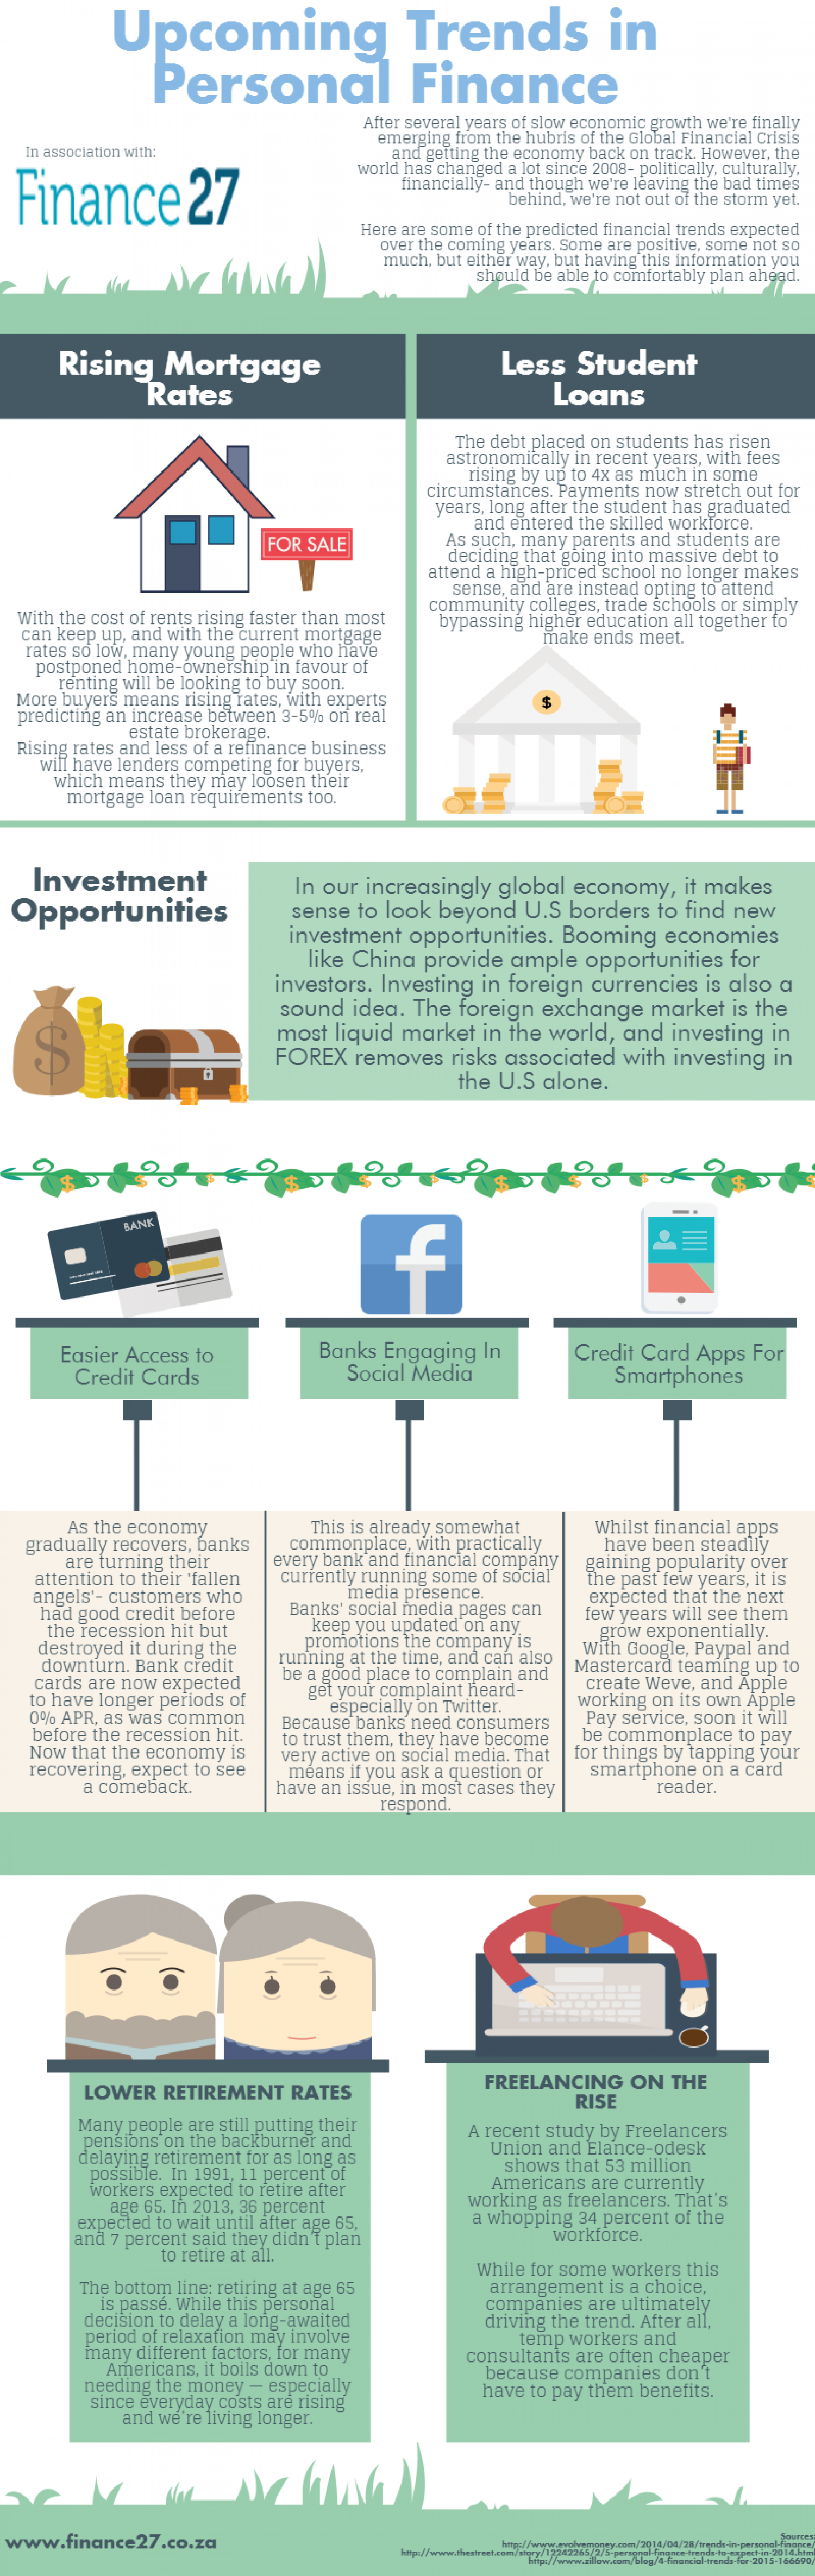 Upcoming Trends in Personal Finance Infographic